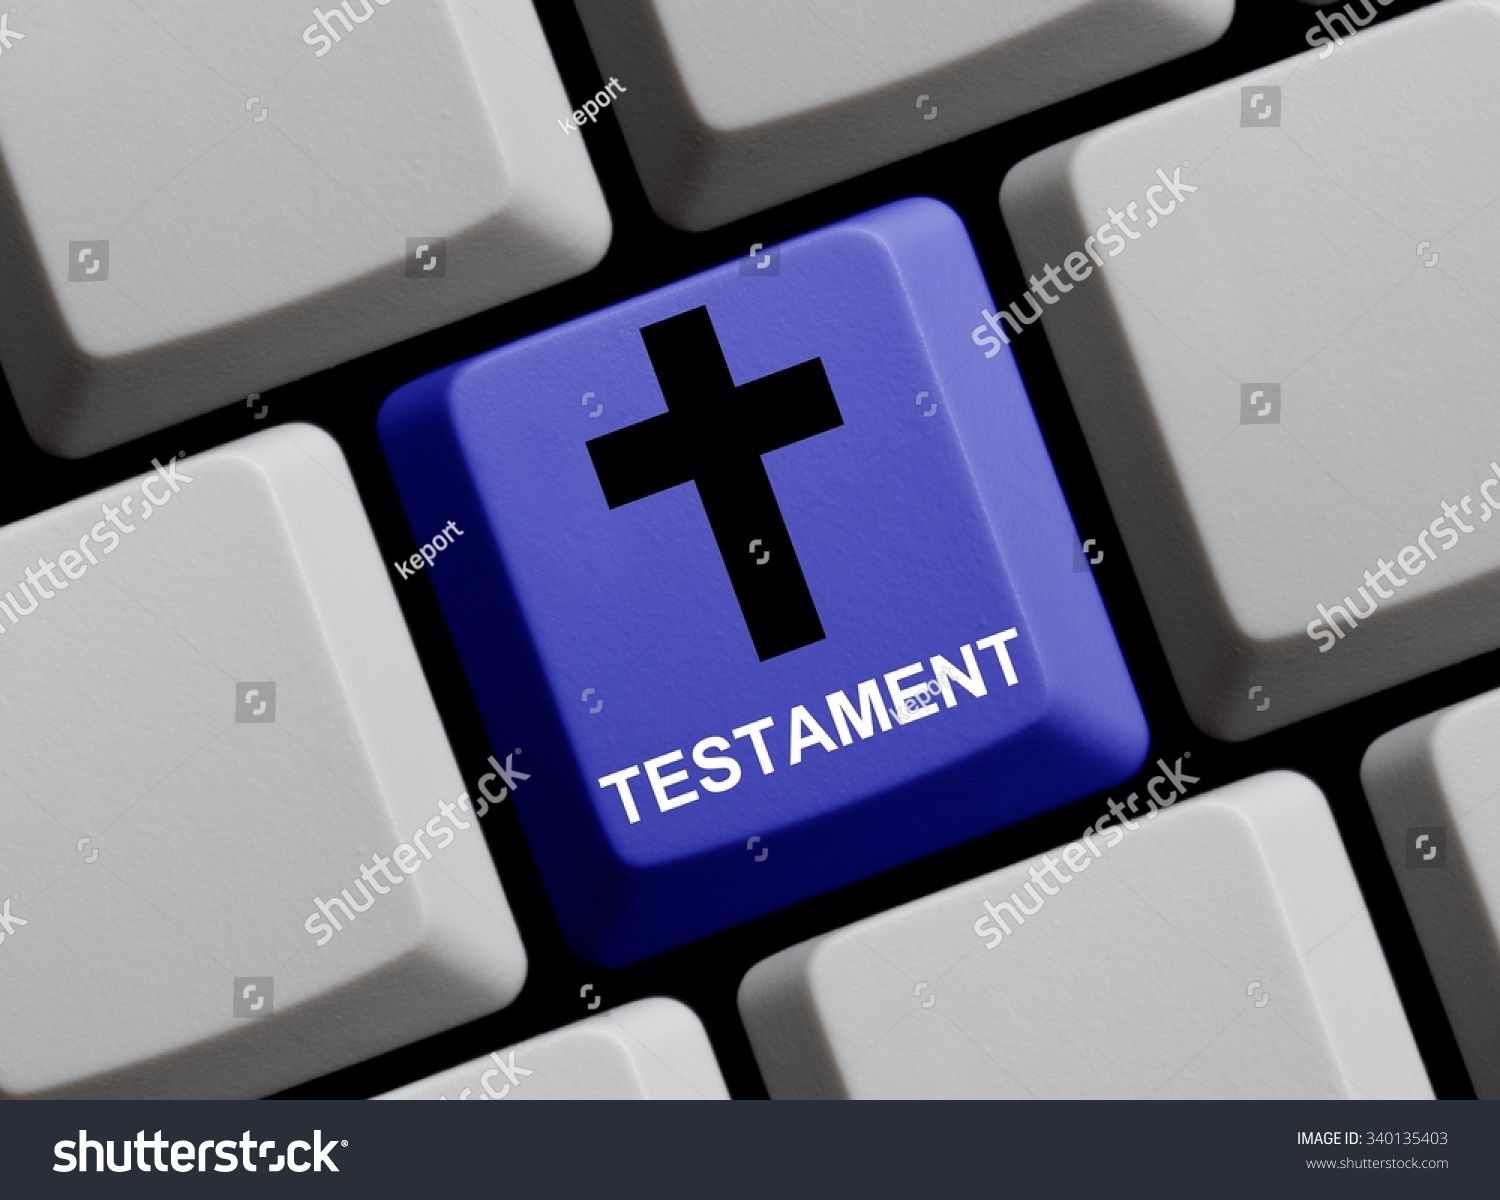 Cross symbol keyboard images symbol and sign ideas computer keyboard symbol cross showing testament stock computer keyboard with symbol of cross showing testament buycottarizona buycottarizona